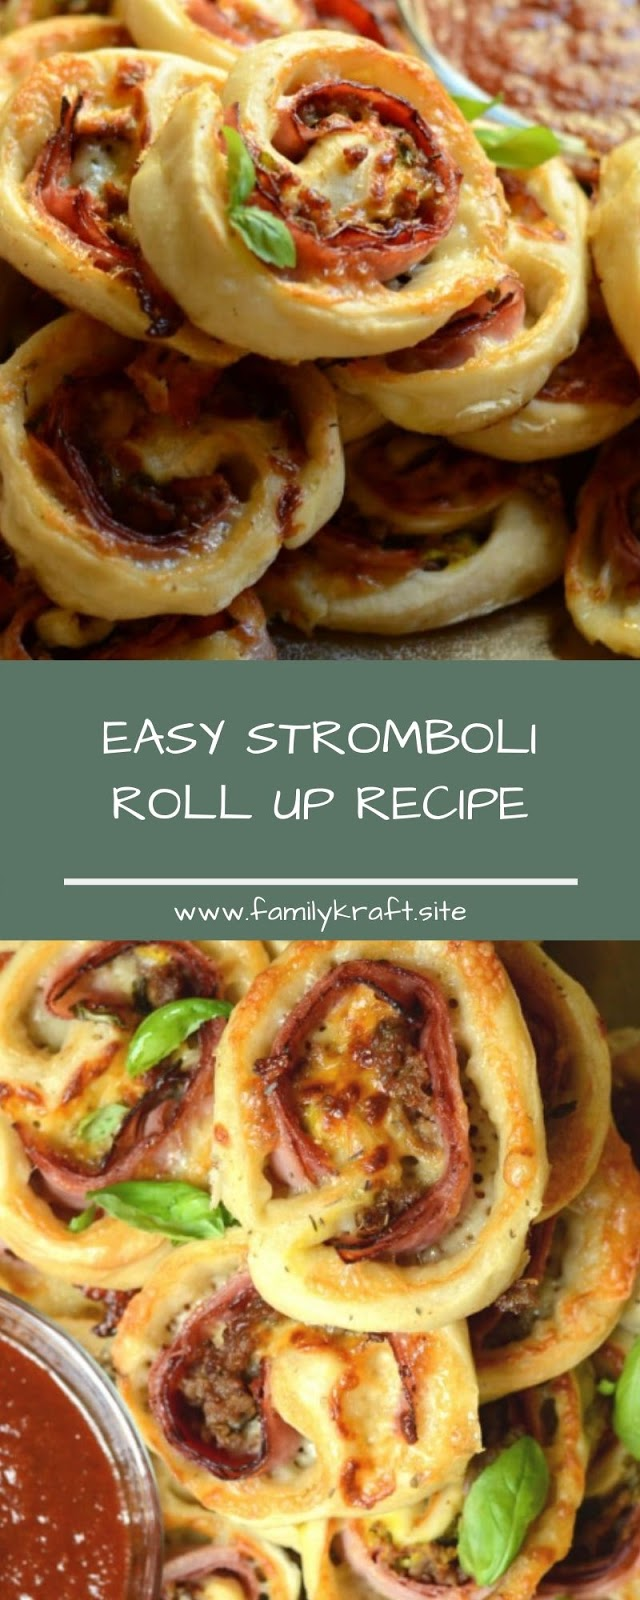 EASY STROMBOLI ROLL UP RECIPE